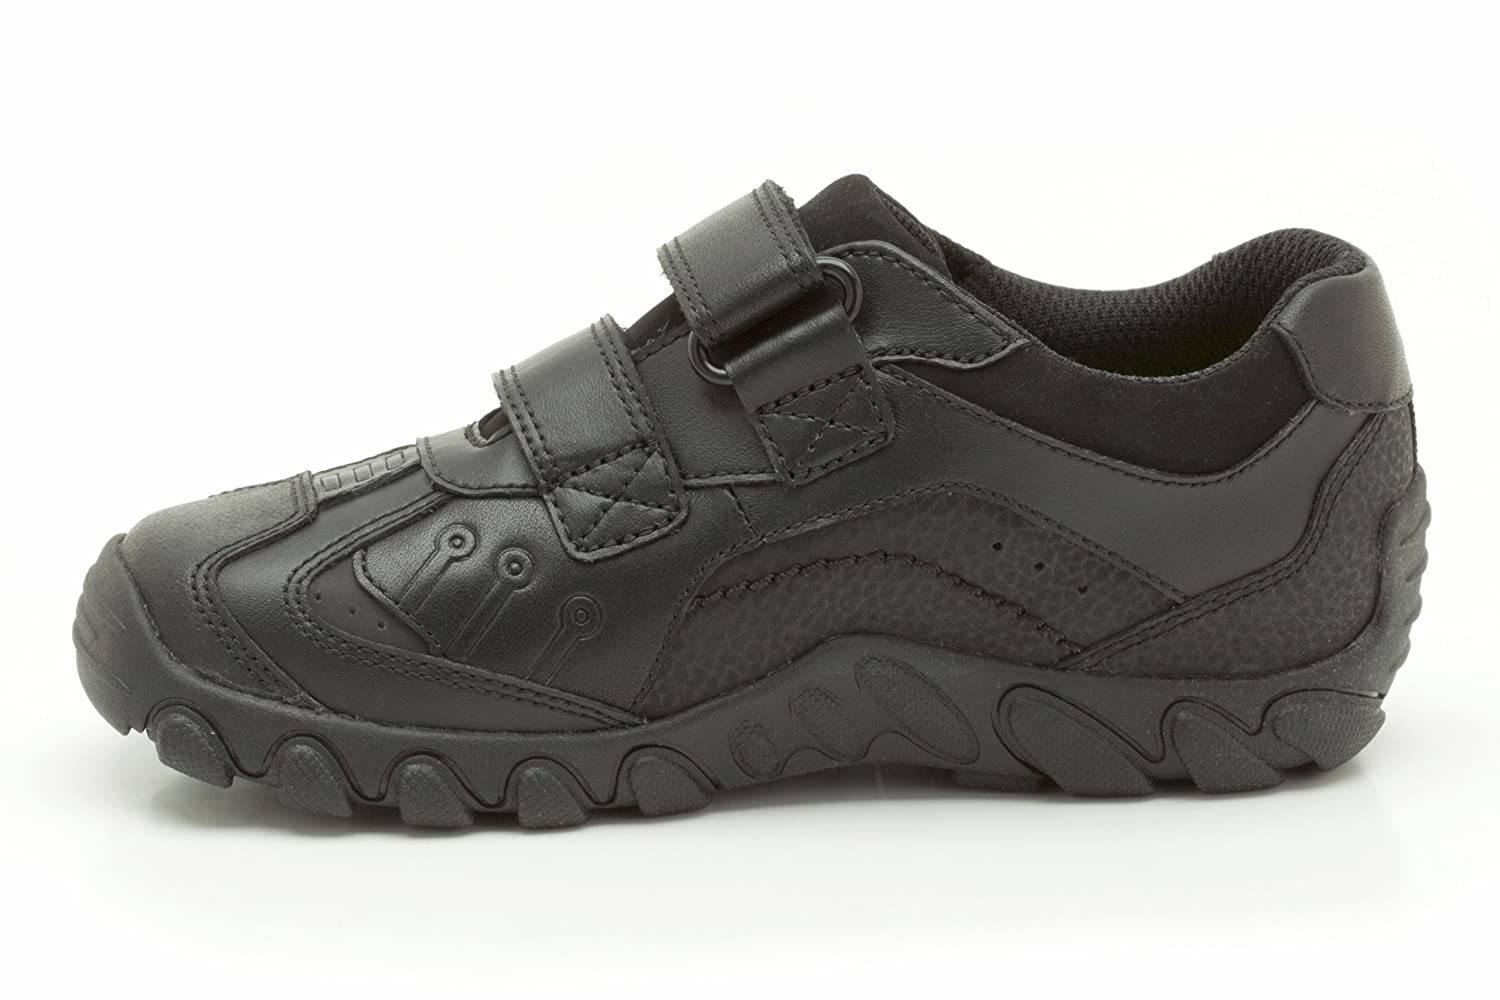 84bfc15ea6a0 Clarks Boys School Jack Shine Inf Coated Leather Shoes In Black Narrow Fit  Size 10  Amazon.co.uk  Shoes   Bags